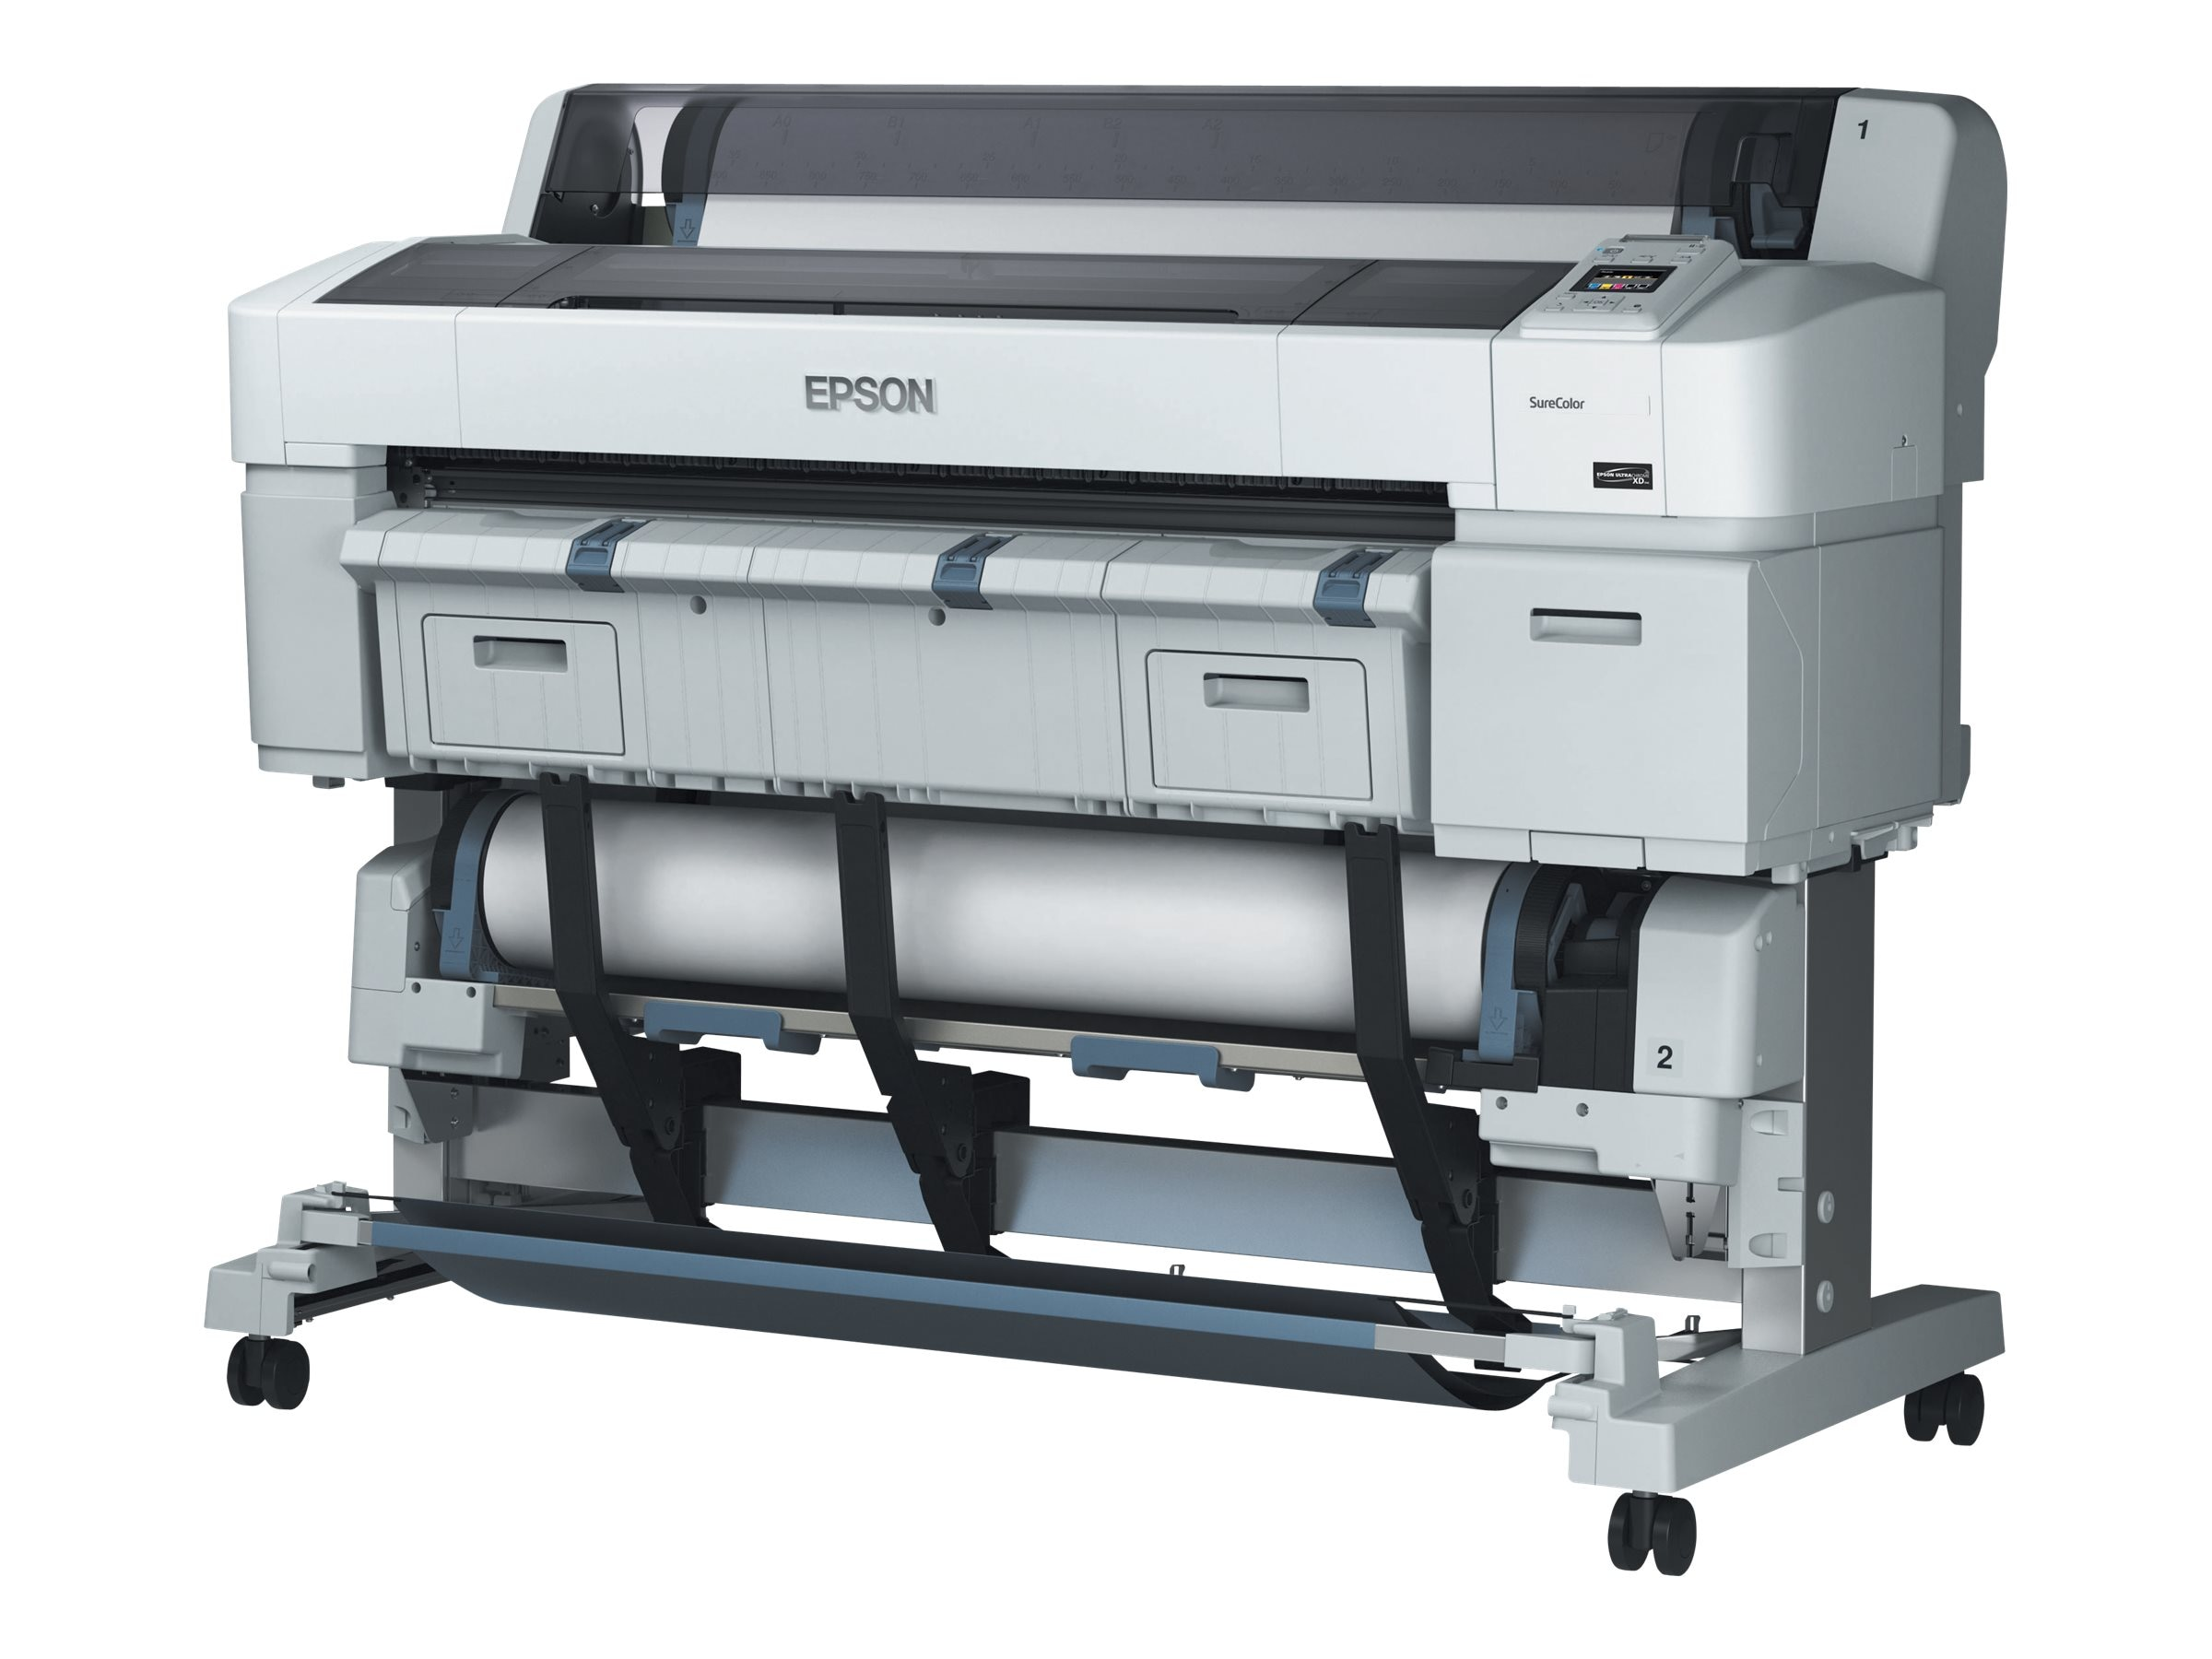 Epson SureColor T5270D Dual Roll Printer - $5995 less instant rebate of $750.00, SCT5270DR, 17929781, Printers - Large Format